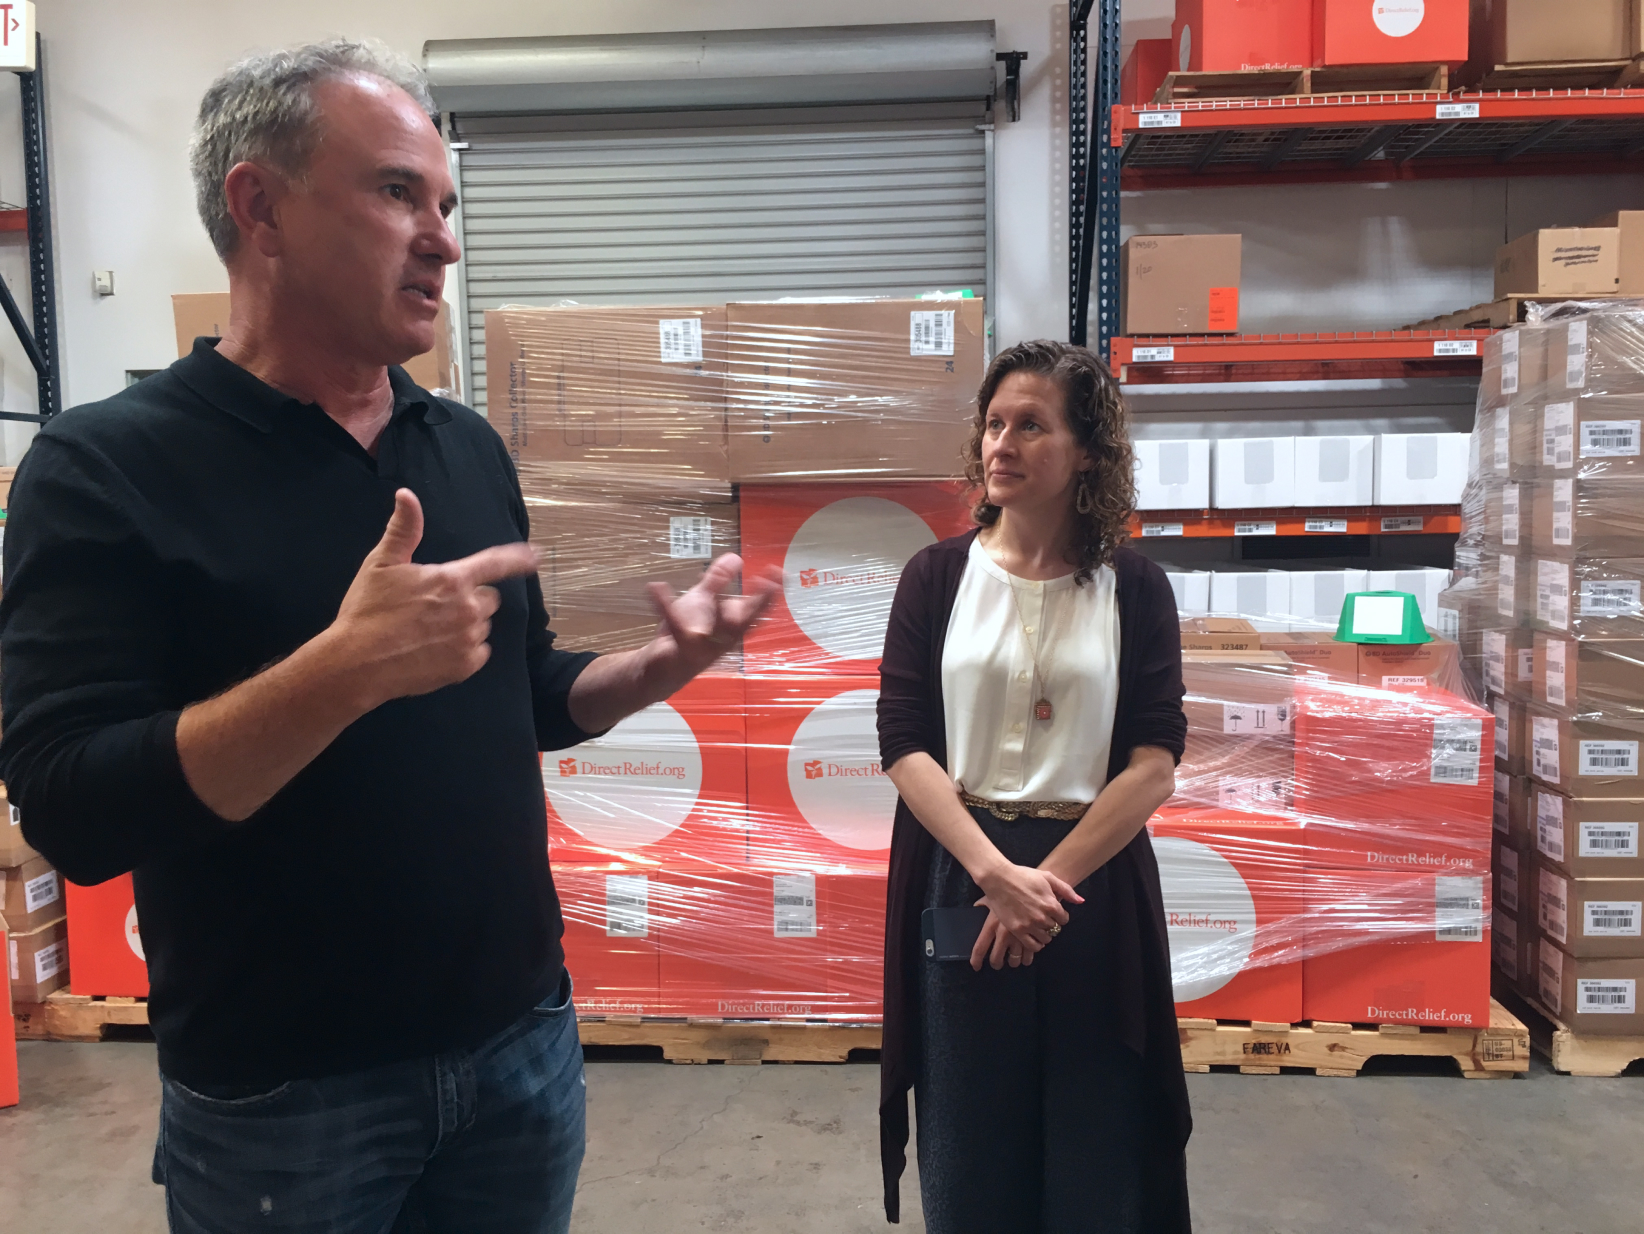 A woman listening to a gesturing man in a large warehouse in front of many shrinkwrapped orange boxes with the Direct Relief logo on them